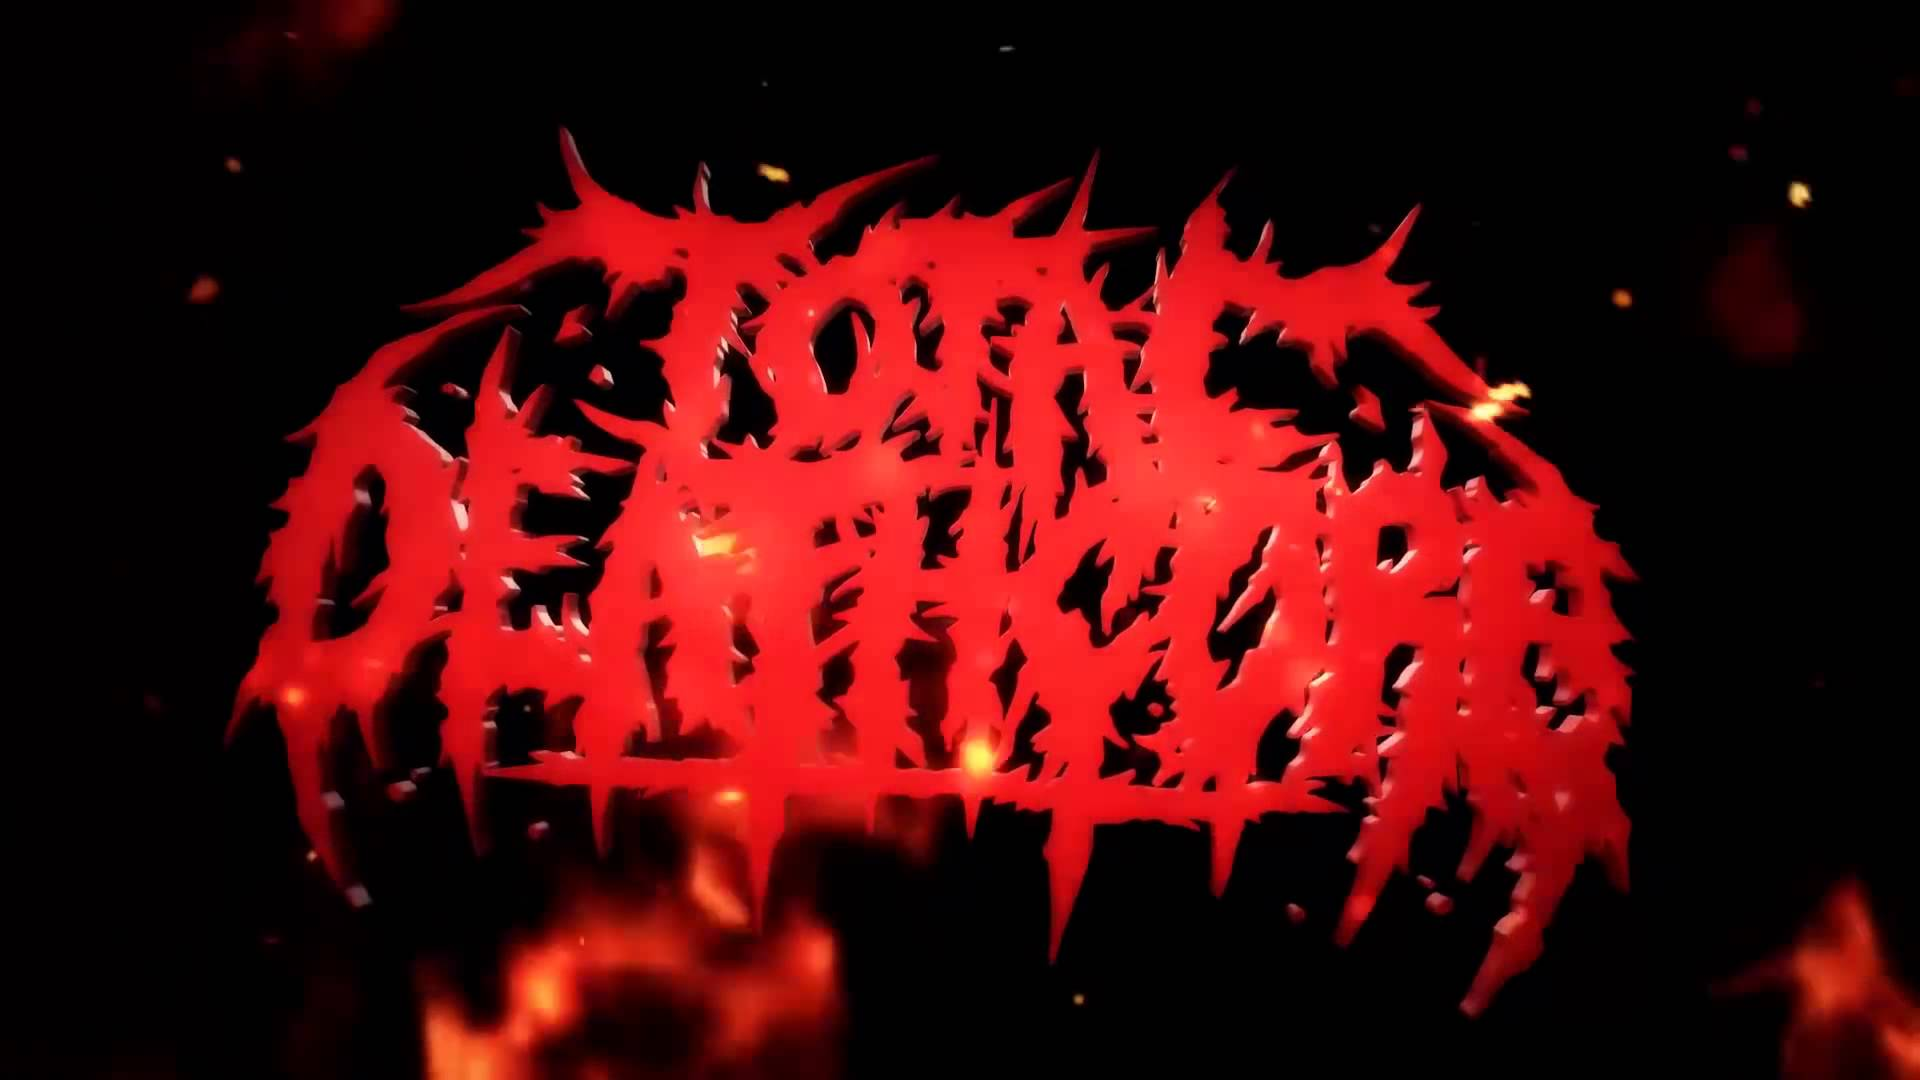 Killitorous see you at the party richter total deathcore 666